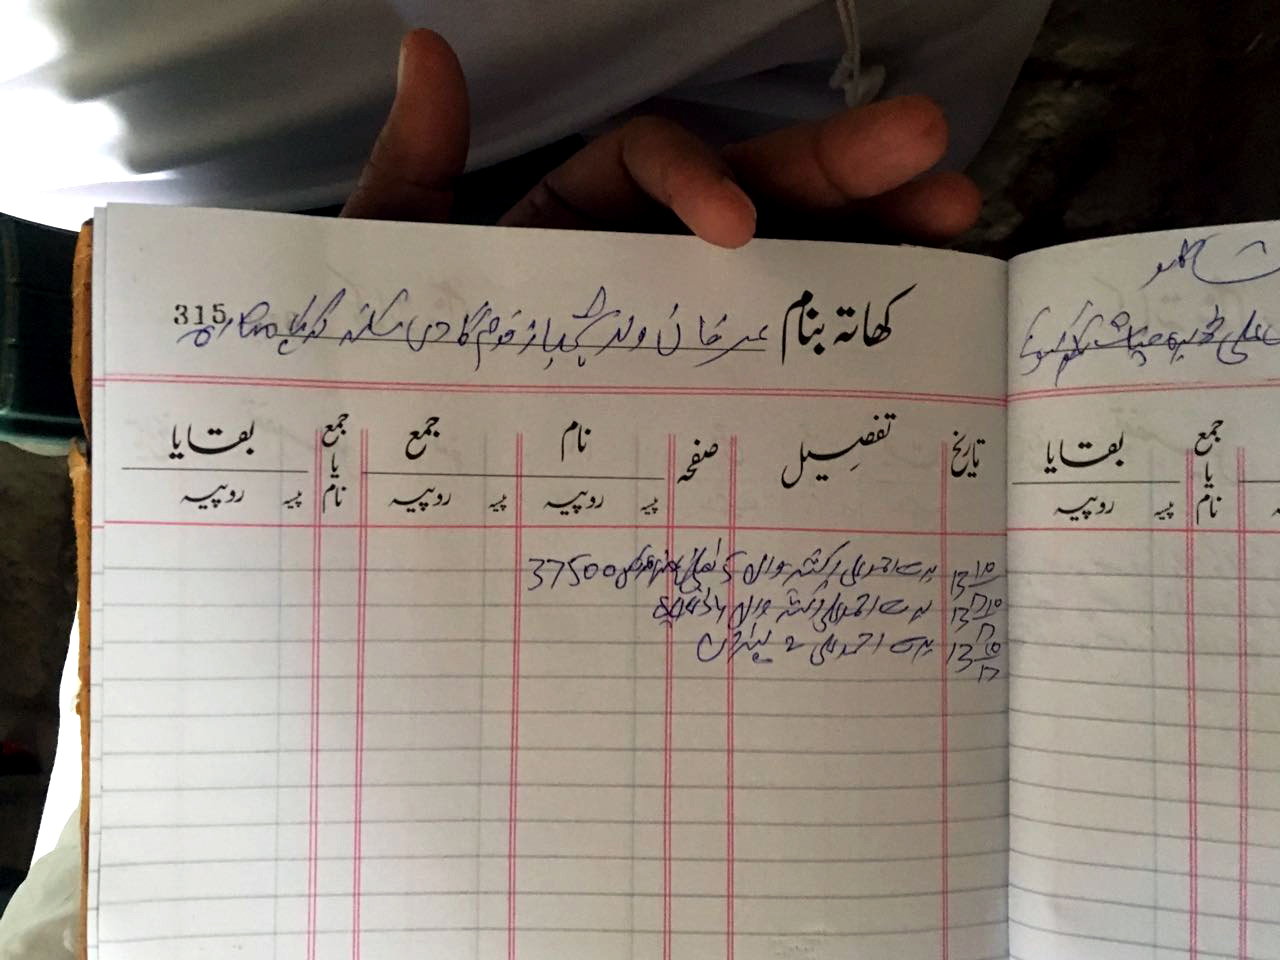 A typical financial record-keeping journal used throughout the Punjab (Pakistan)